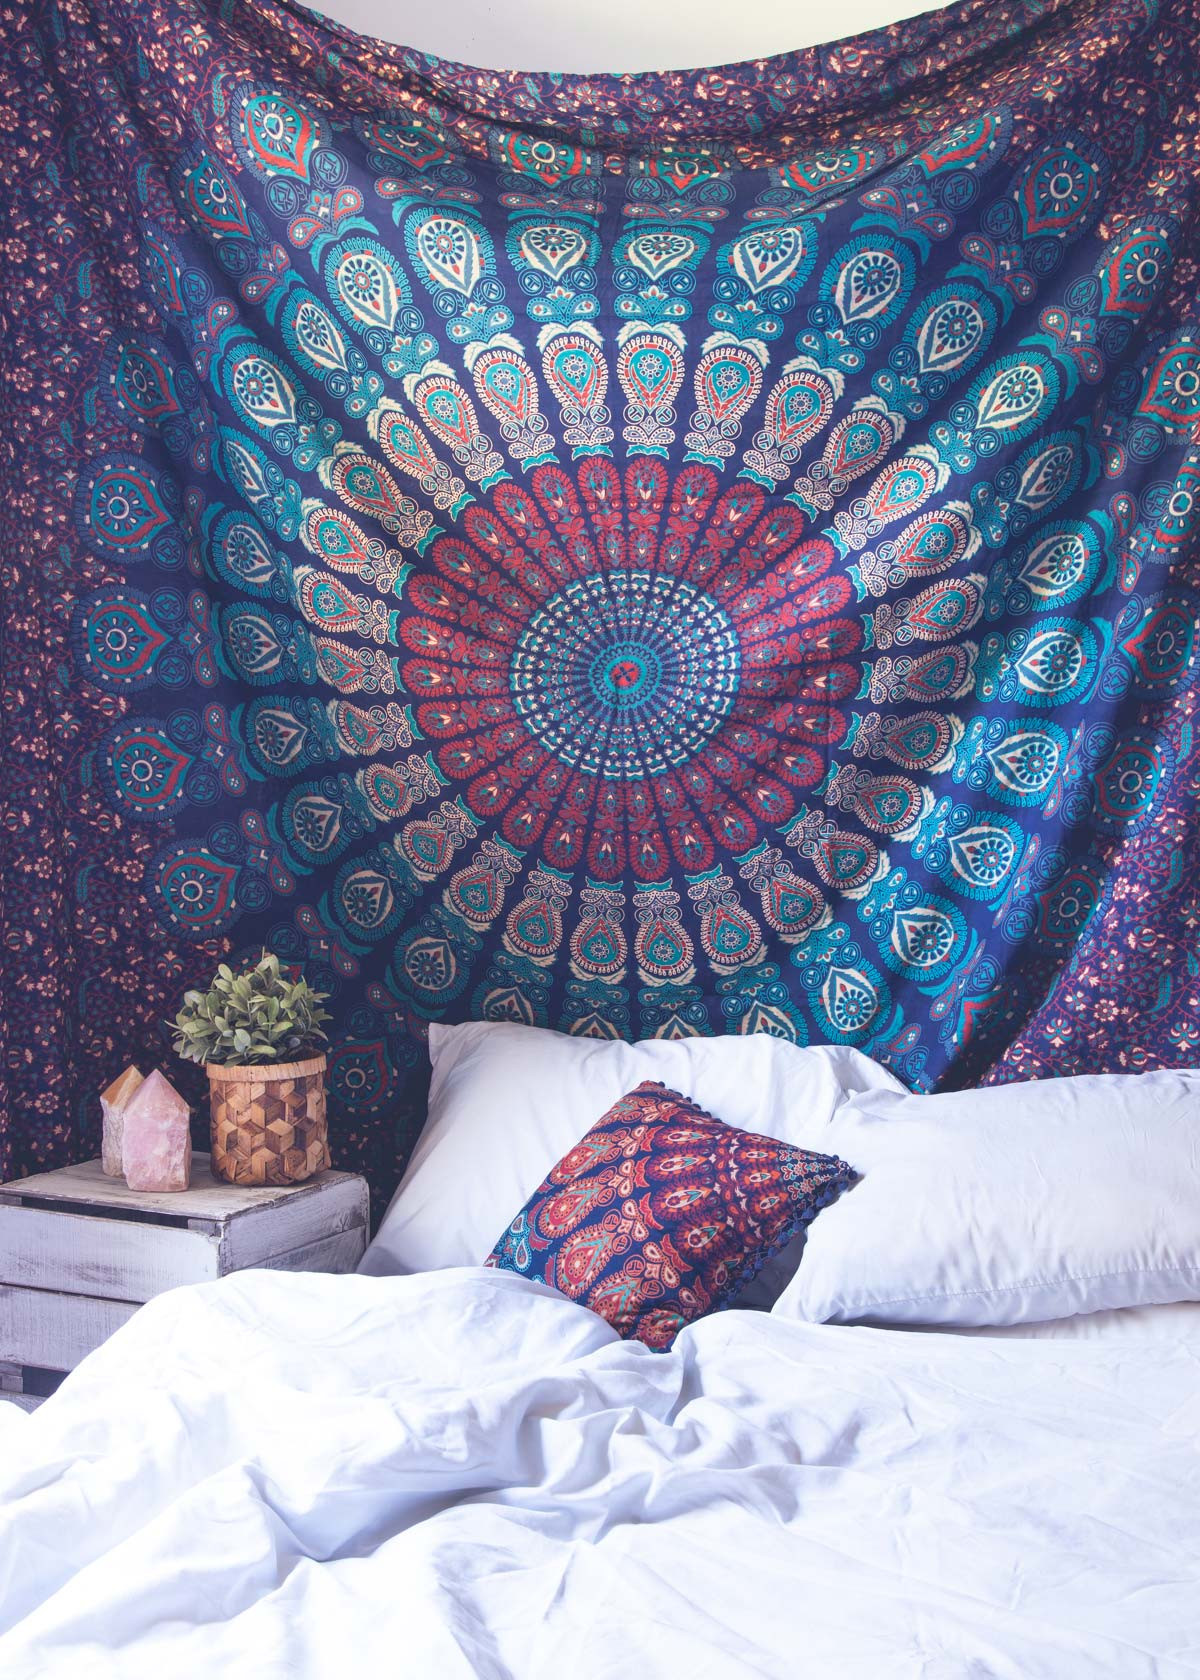 maldives most blue medallion queen living duvet size bohemian ebay cover cotton paisley covers pink tribeca bedding ikat tapestry splendid purple waterproof ideas double luxury best of